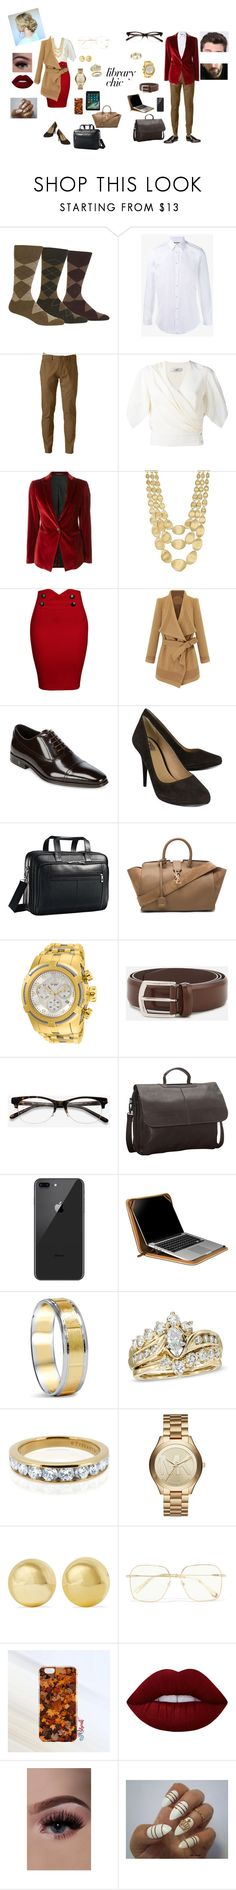 """Work Hard, Play Hard: Season Finals"" by kayla-banks ❤ liked on Polyvore featuring Polo Ralph Lauren, Gucci, Hollywood the Jean People, Lanvin, Tagliatore, Marco Bicego, WithChic, Versace, Pour La Victoire and Samsonite"